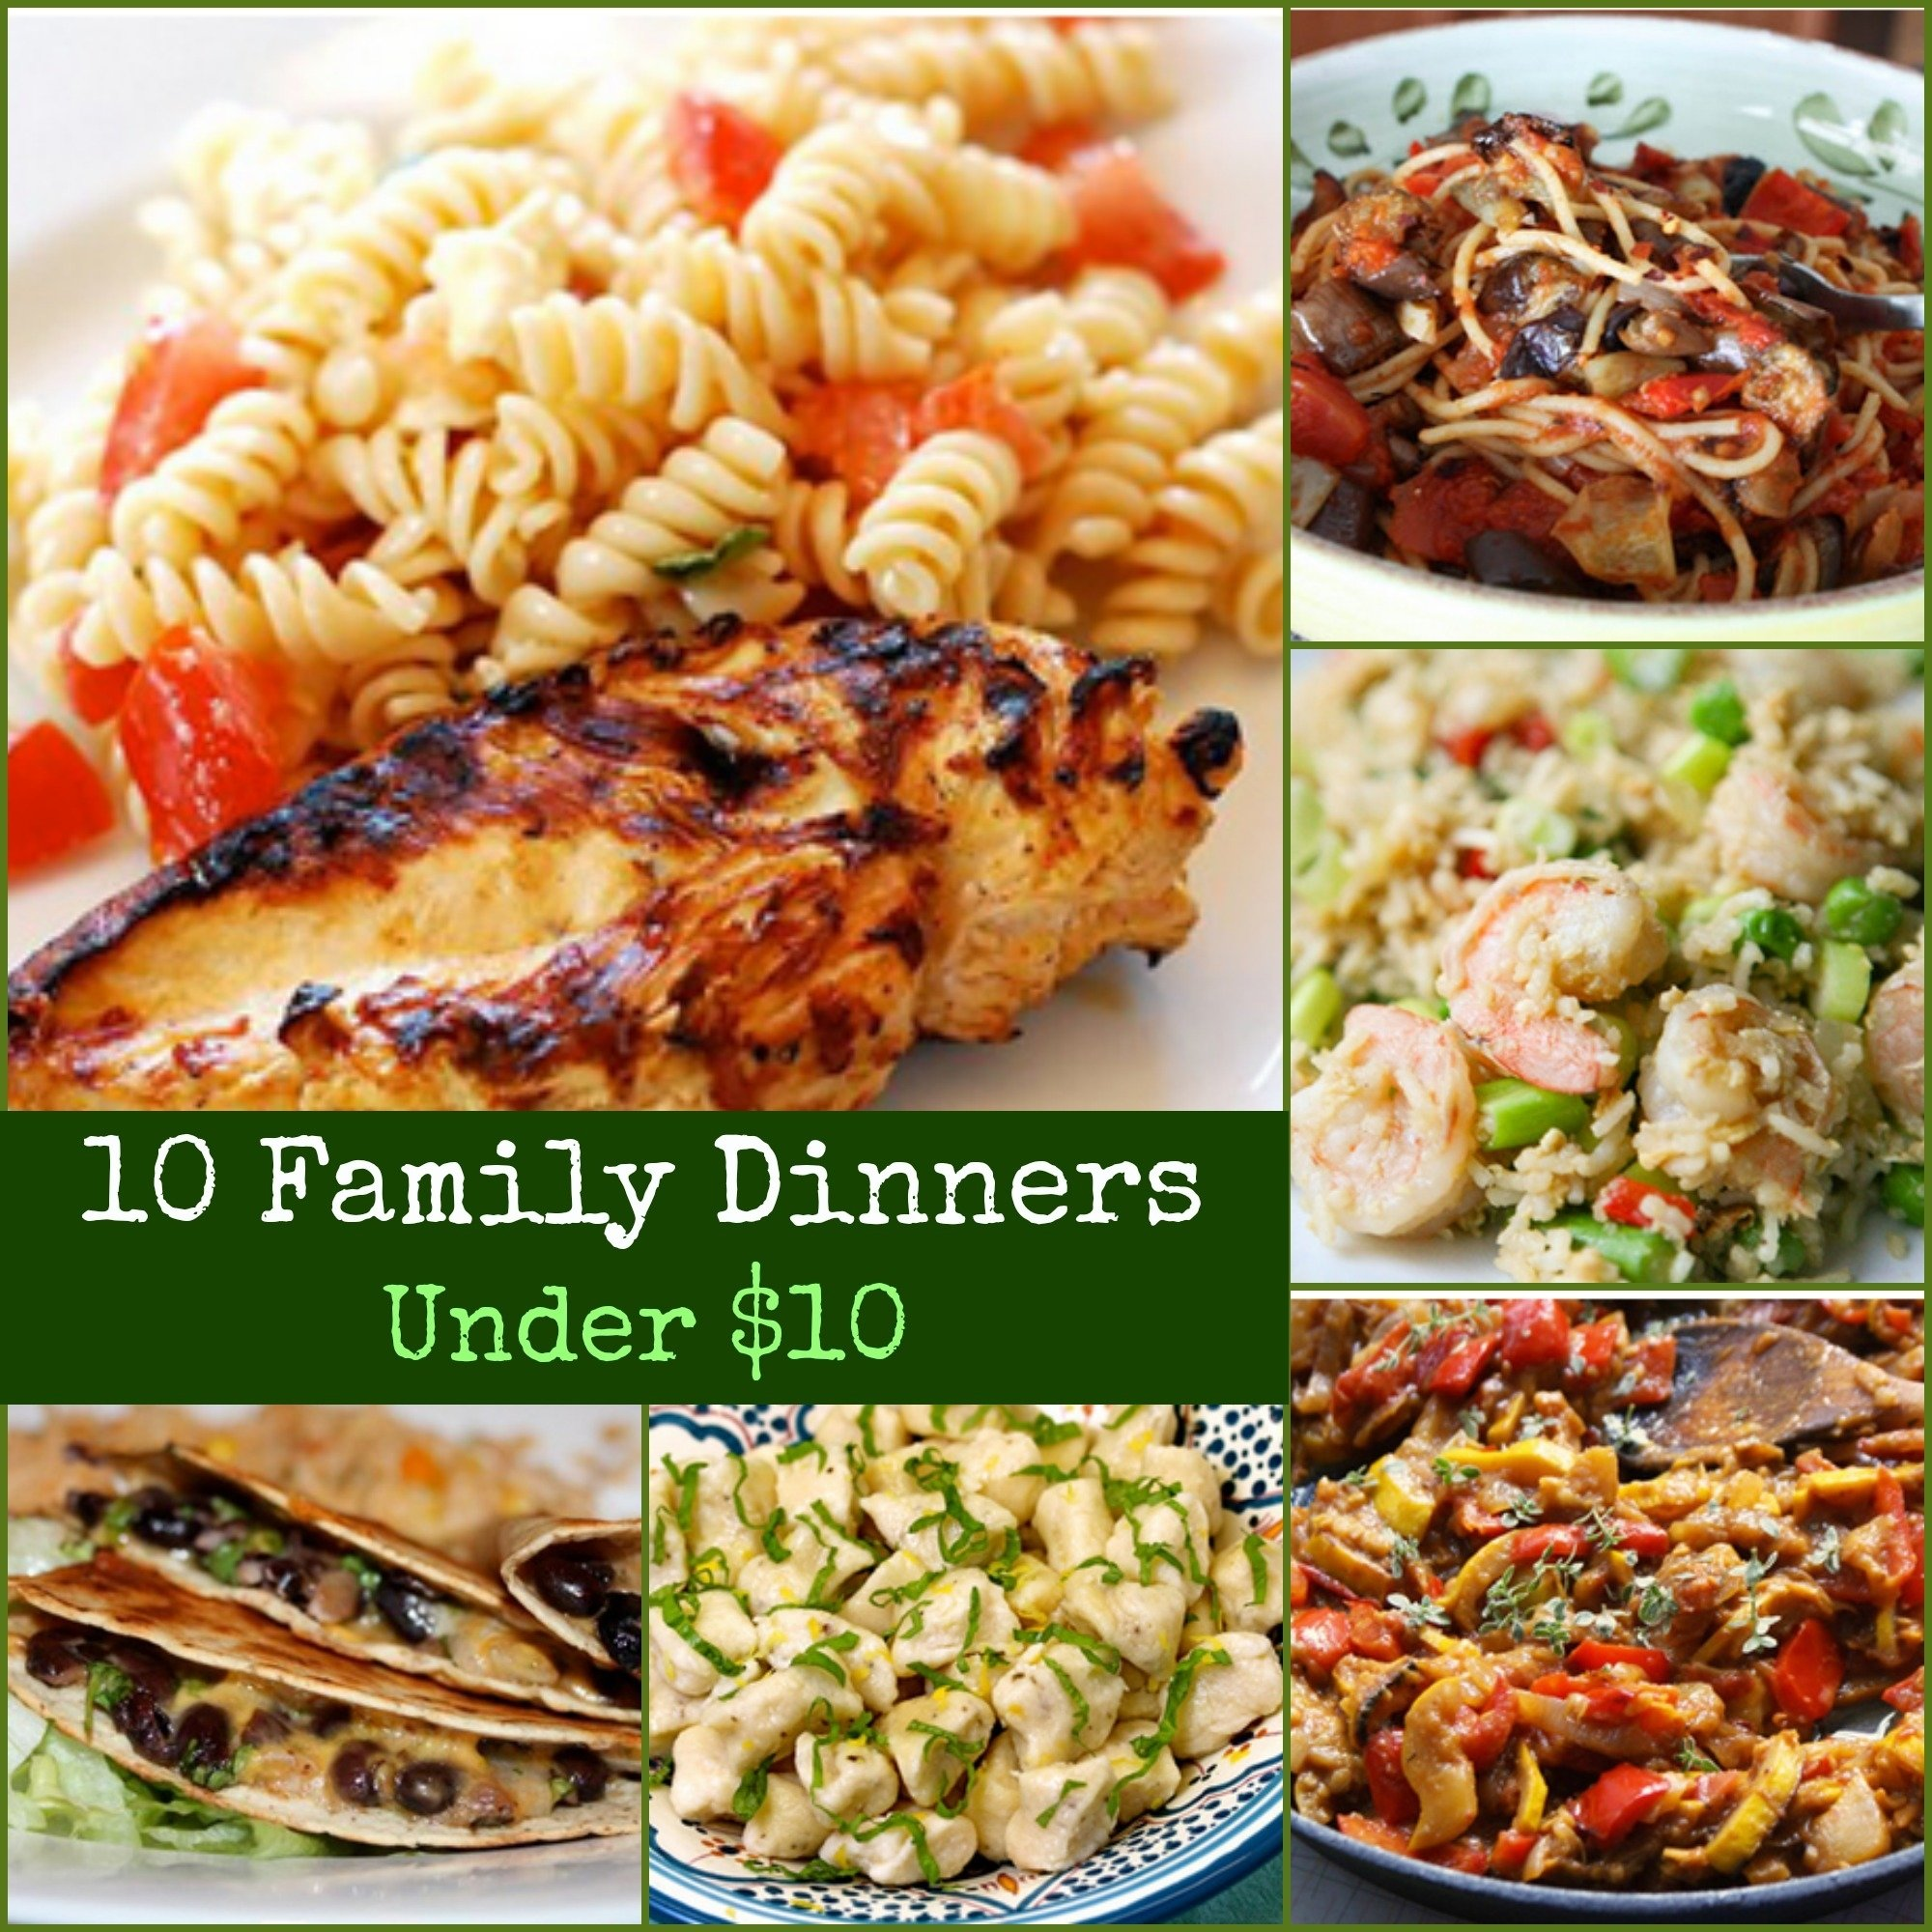 download quick easy recipes for dinner for the family | food photos